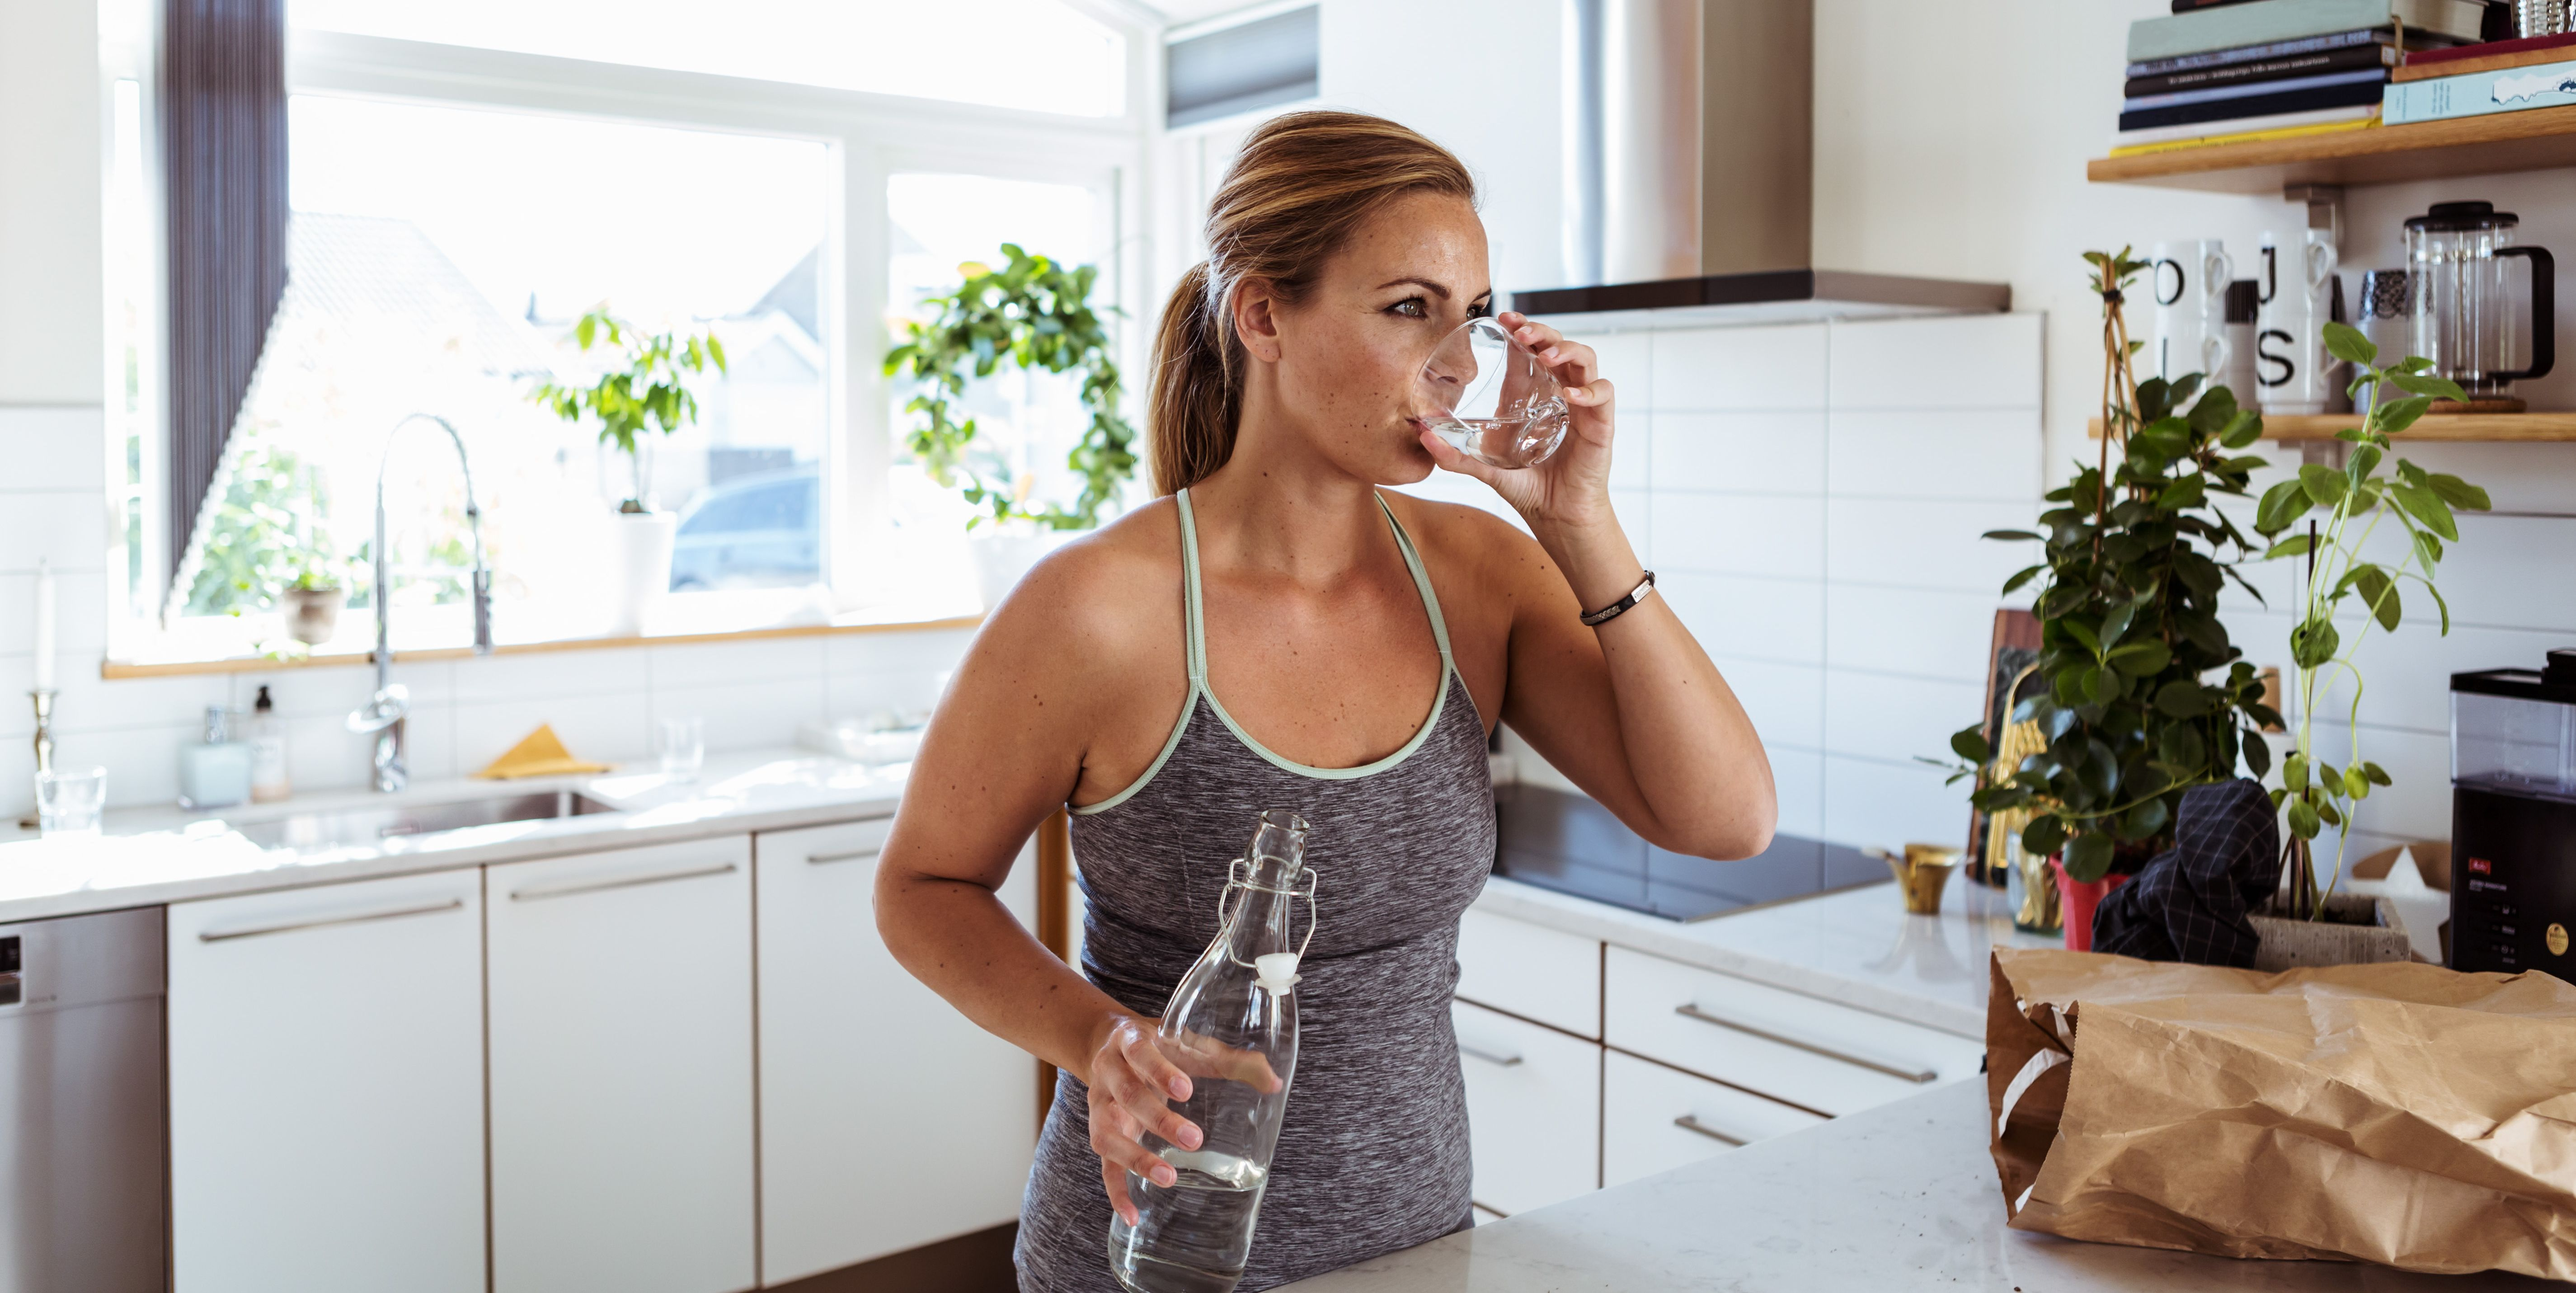 Tired woman in sports clothing drinking water while standing at kitchen